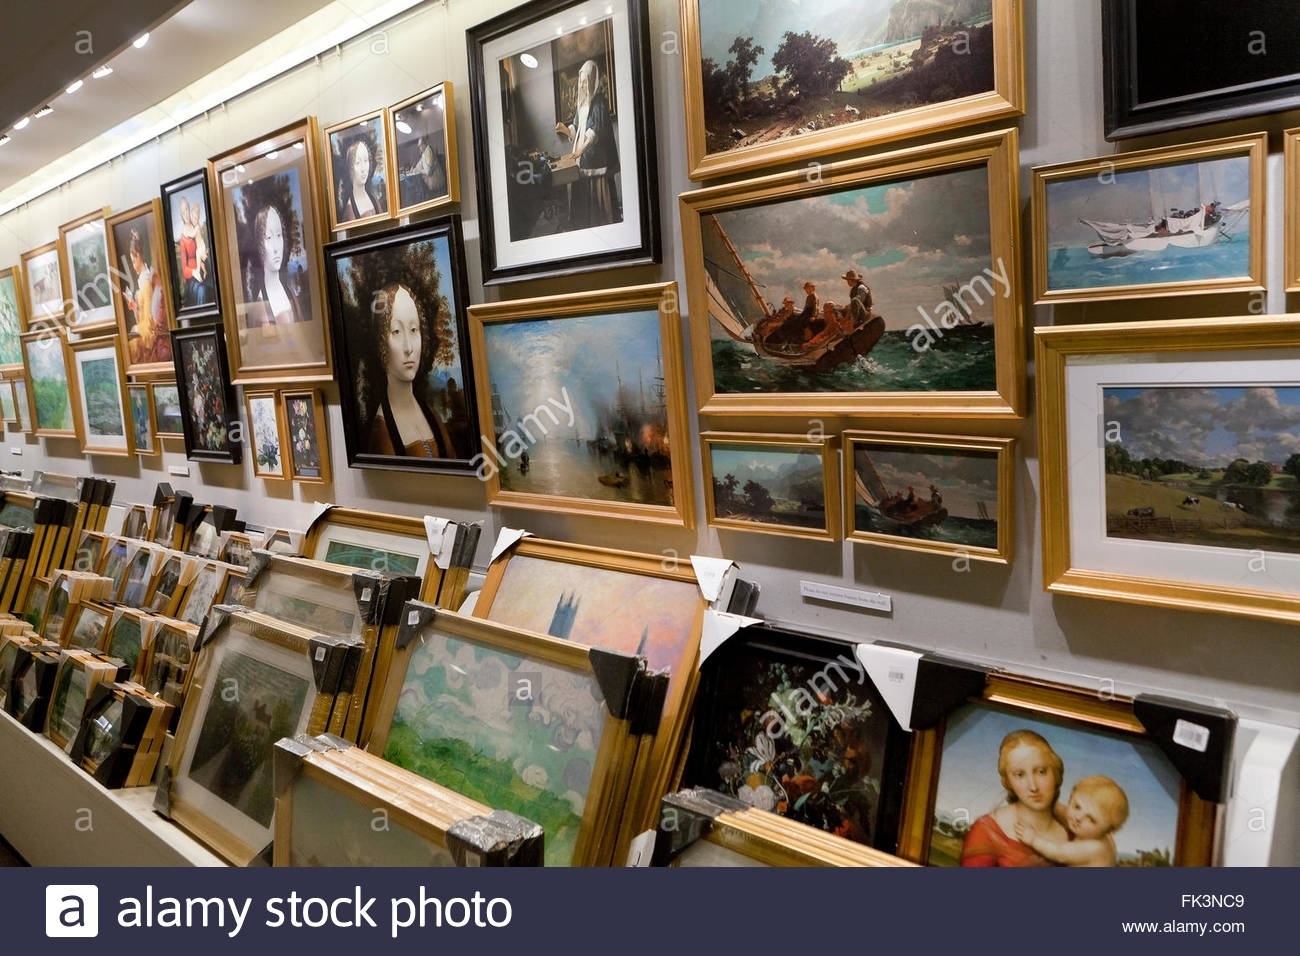 Framed Prints Of Famous Paintings – Usa Stock Photo, Royalty Free Intended For Most Up To Date Famous Art Framed Prints (Gallery 8 of 15)